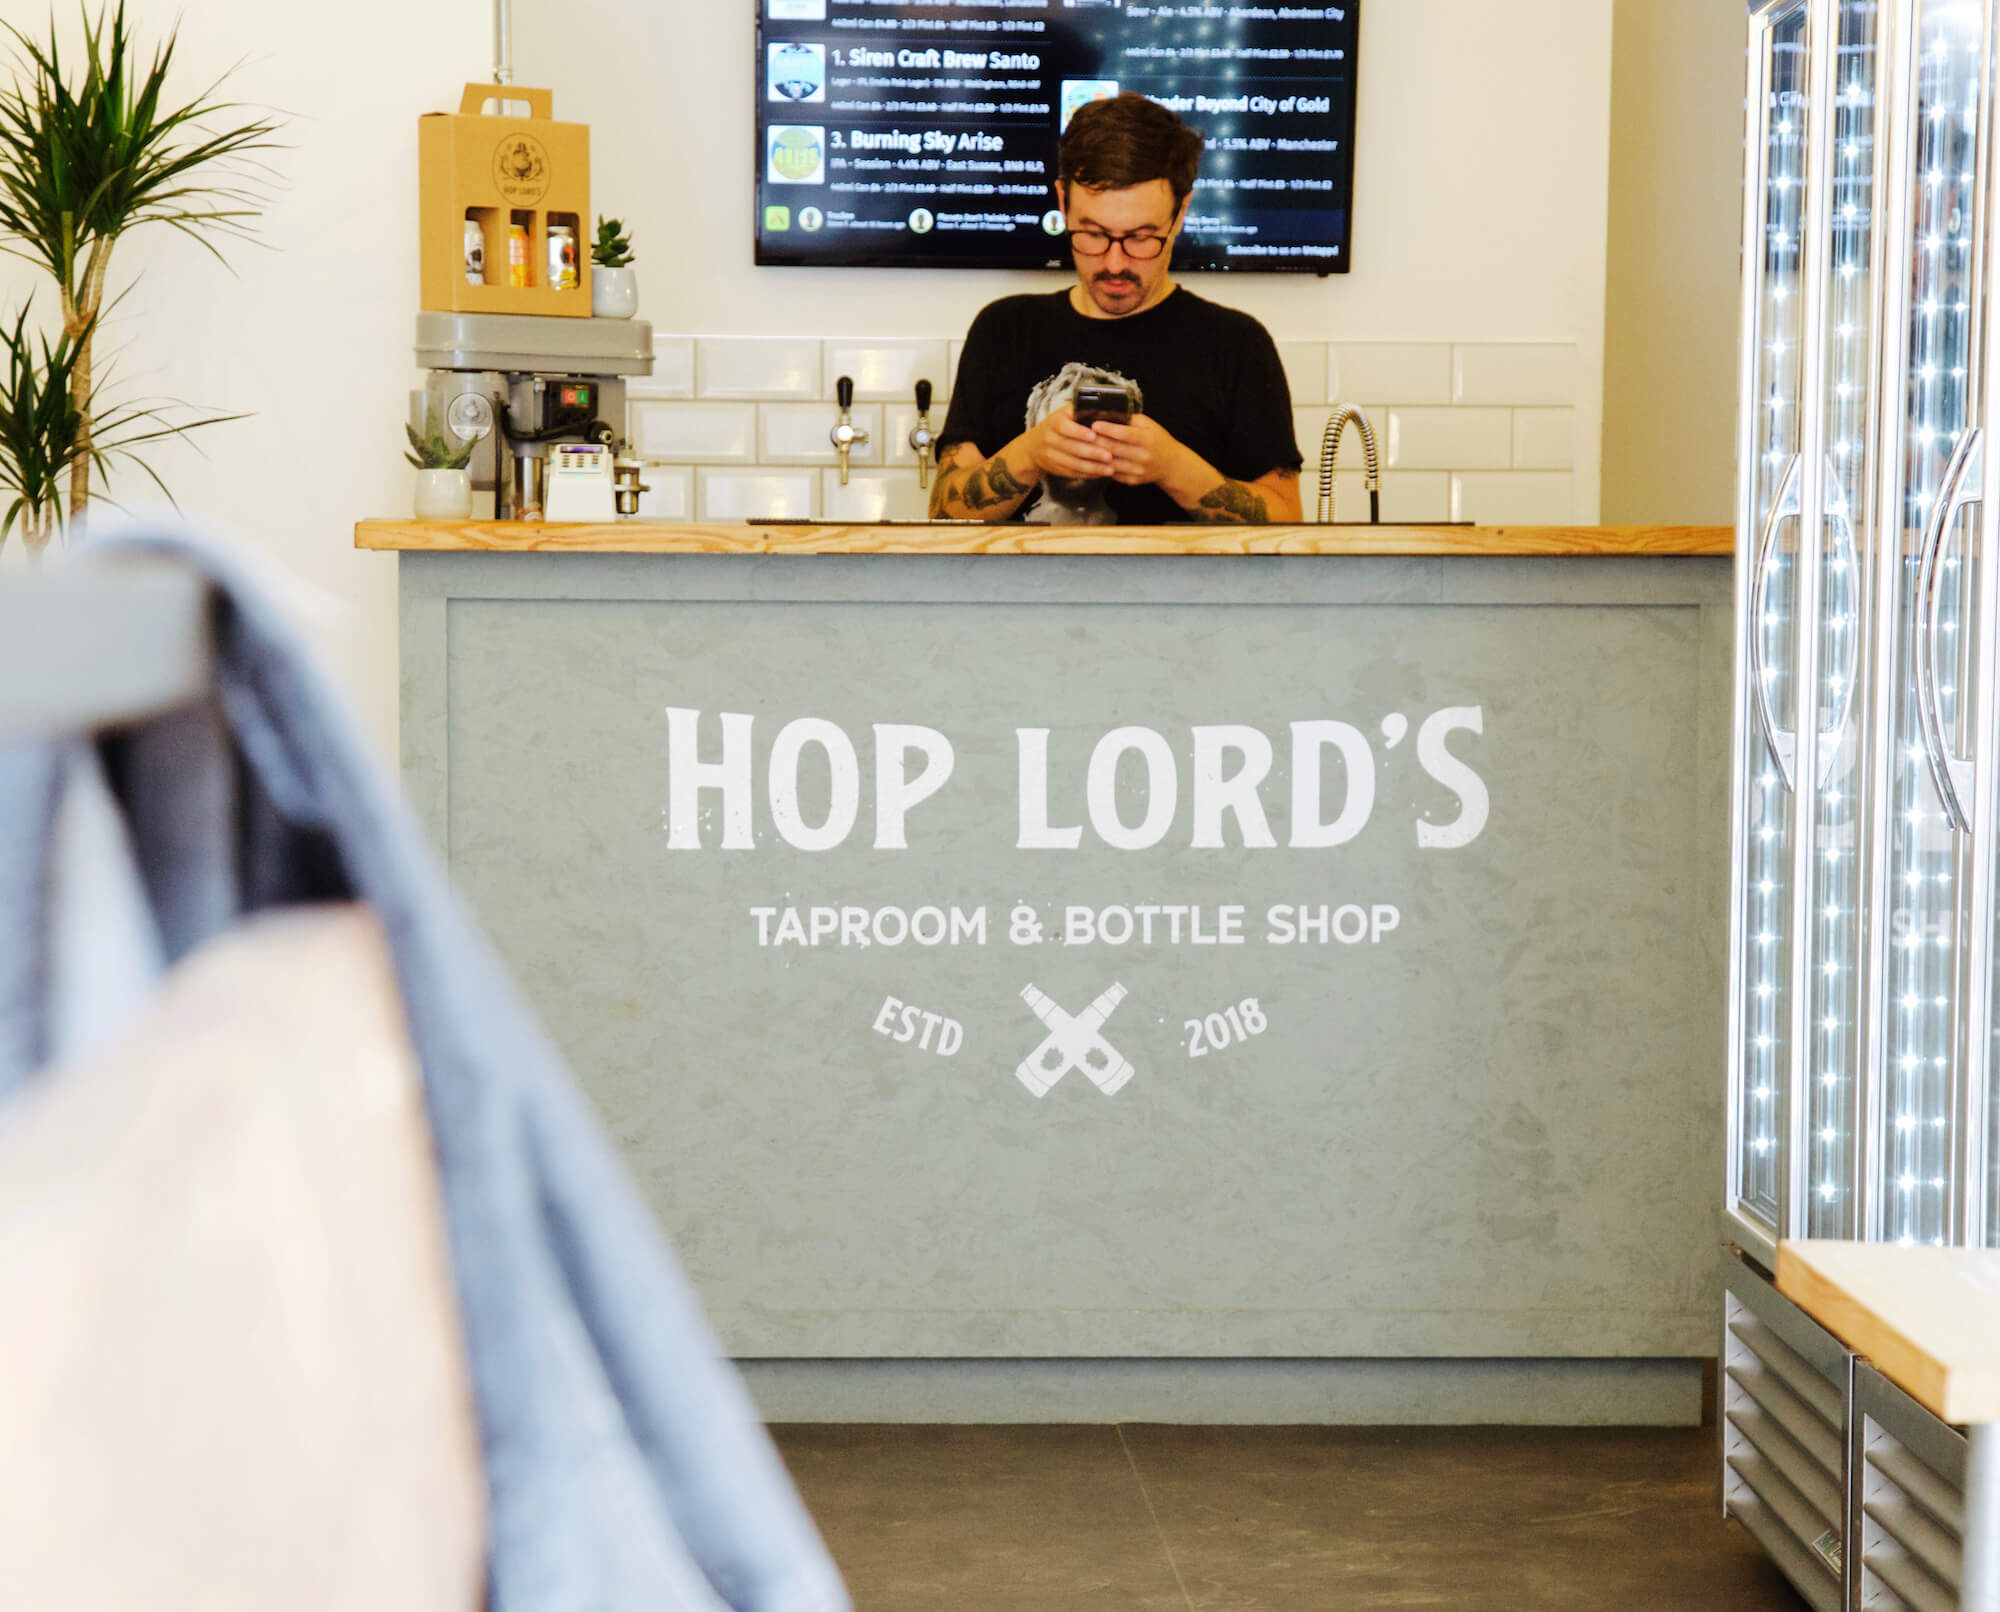 Hop Lord's Taproom & Bottle Shop